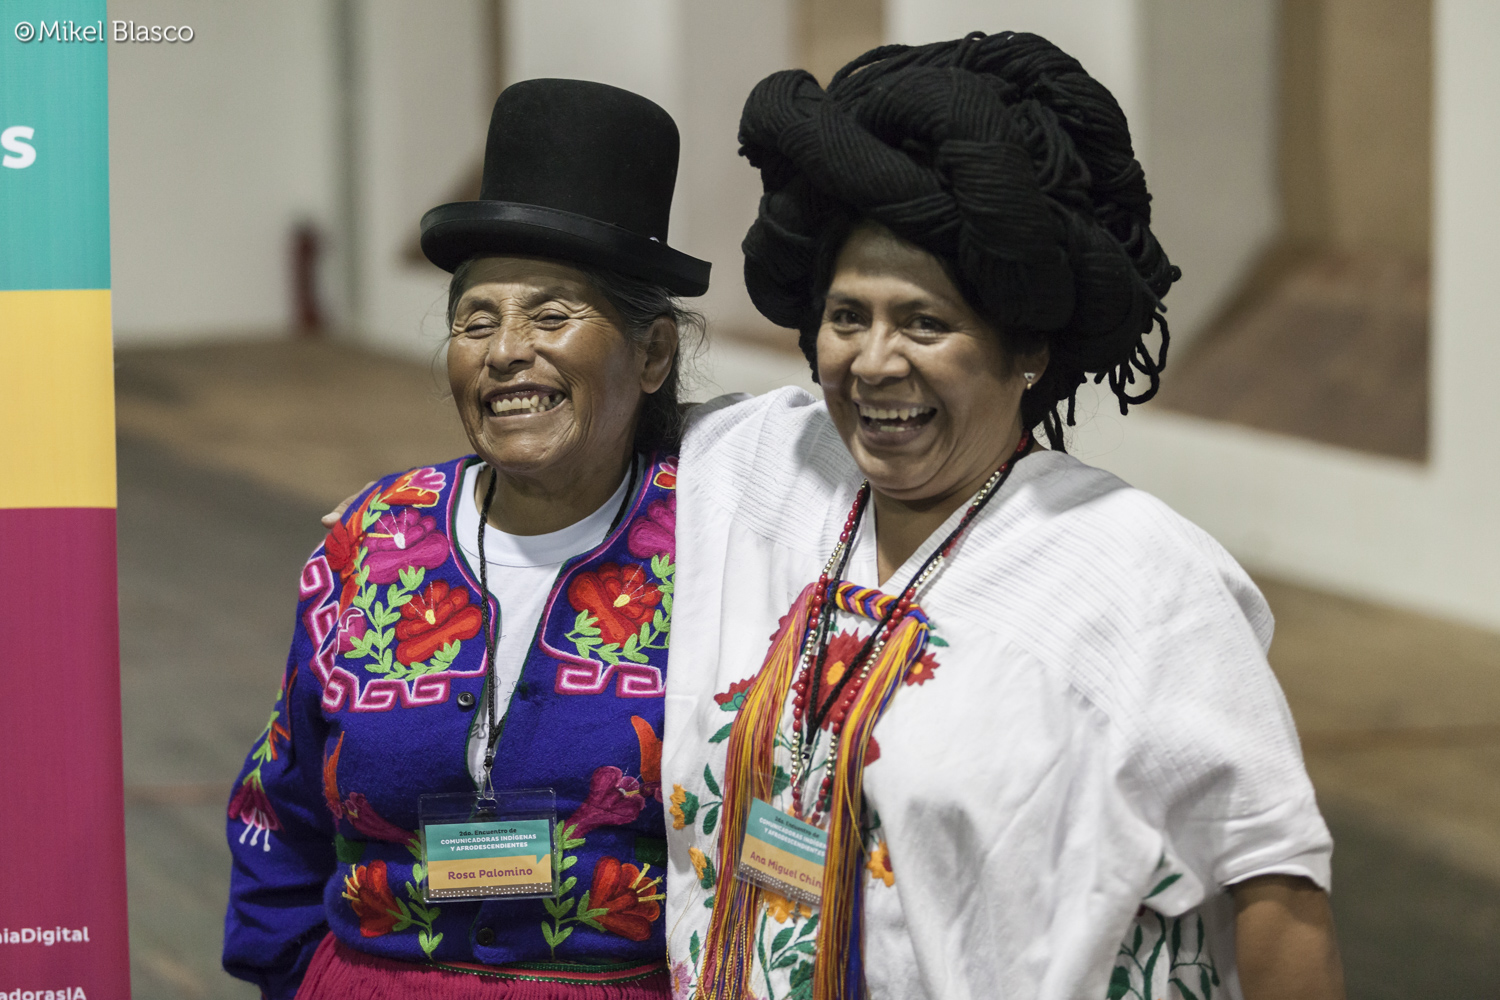 Photograph taken during the Meeting of the Indigenous and Afro-descendant Communicators in Oaxaca, México, 2015. Credit: Mikel Blasco/CCEMx (Spanish Cultural Center). Image used with permission from the Digital Citizenship Laboratory.